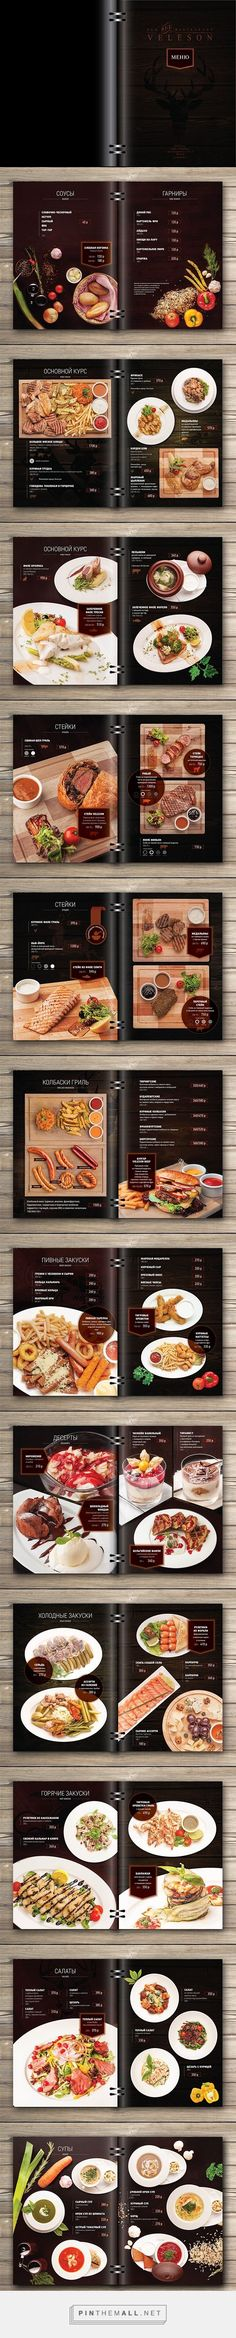 Menu for restaurant by Ann Reus: